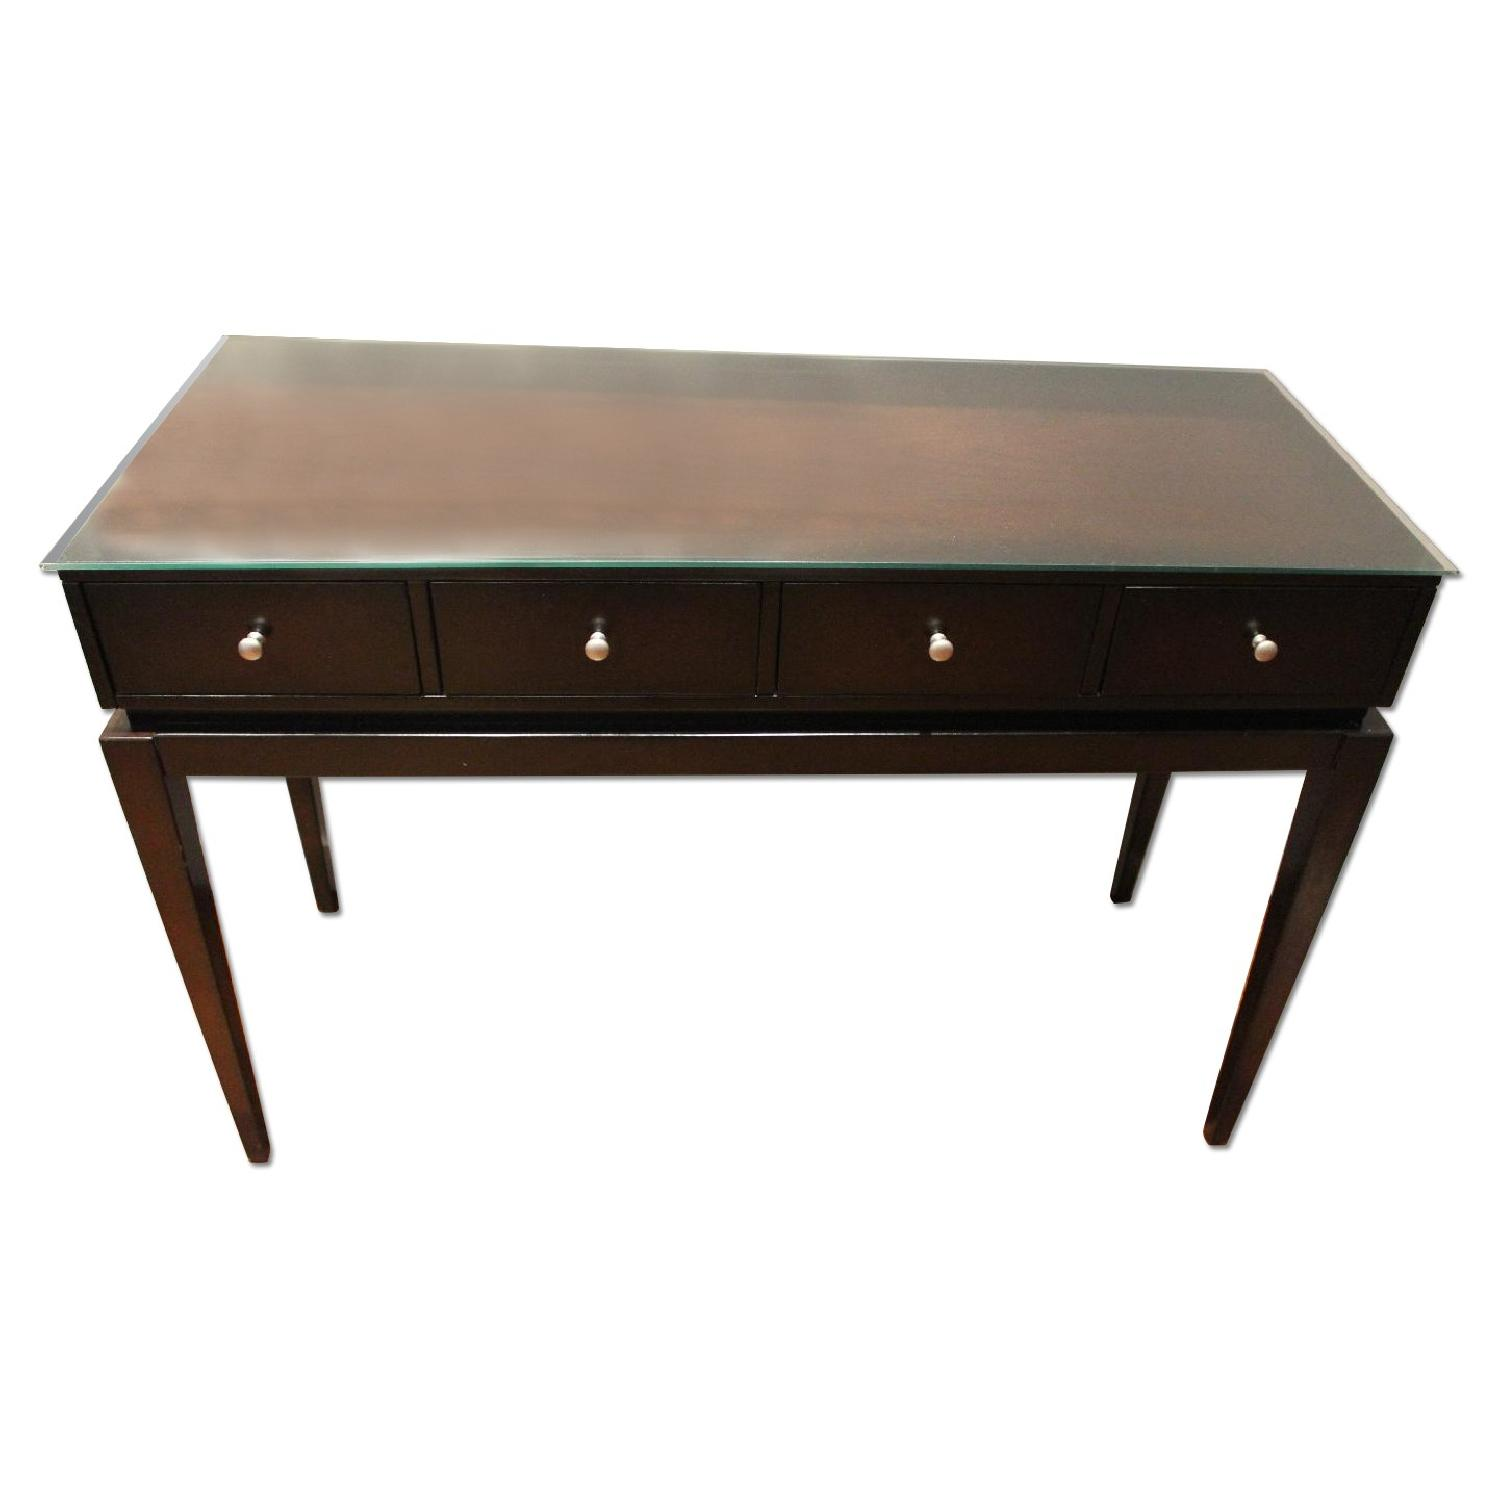 Used desks for sale in nyc aptdeco - Used console table for sale ...